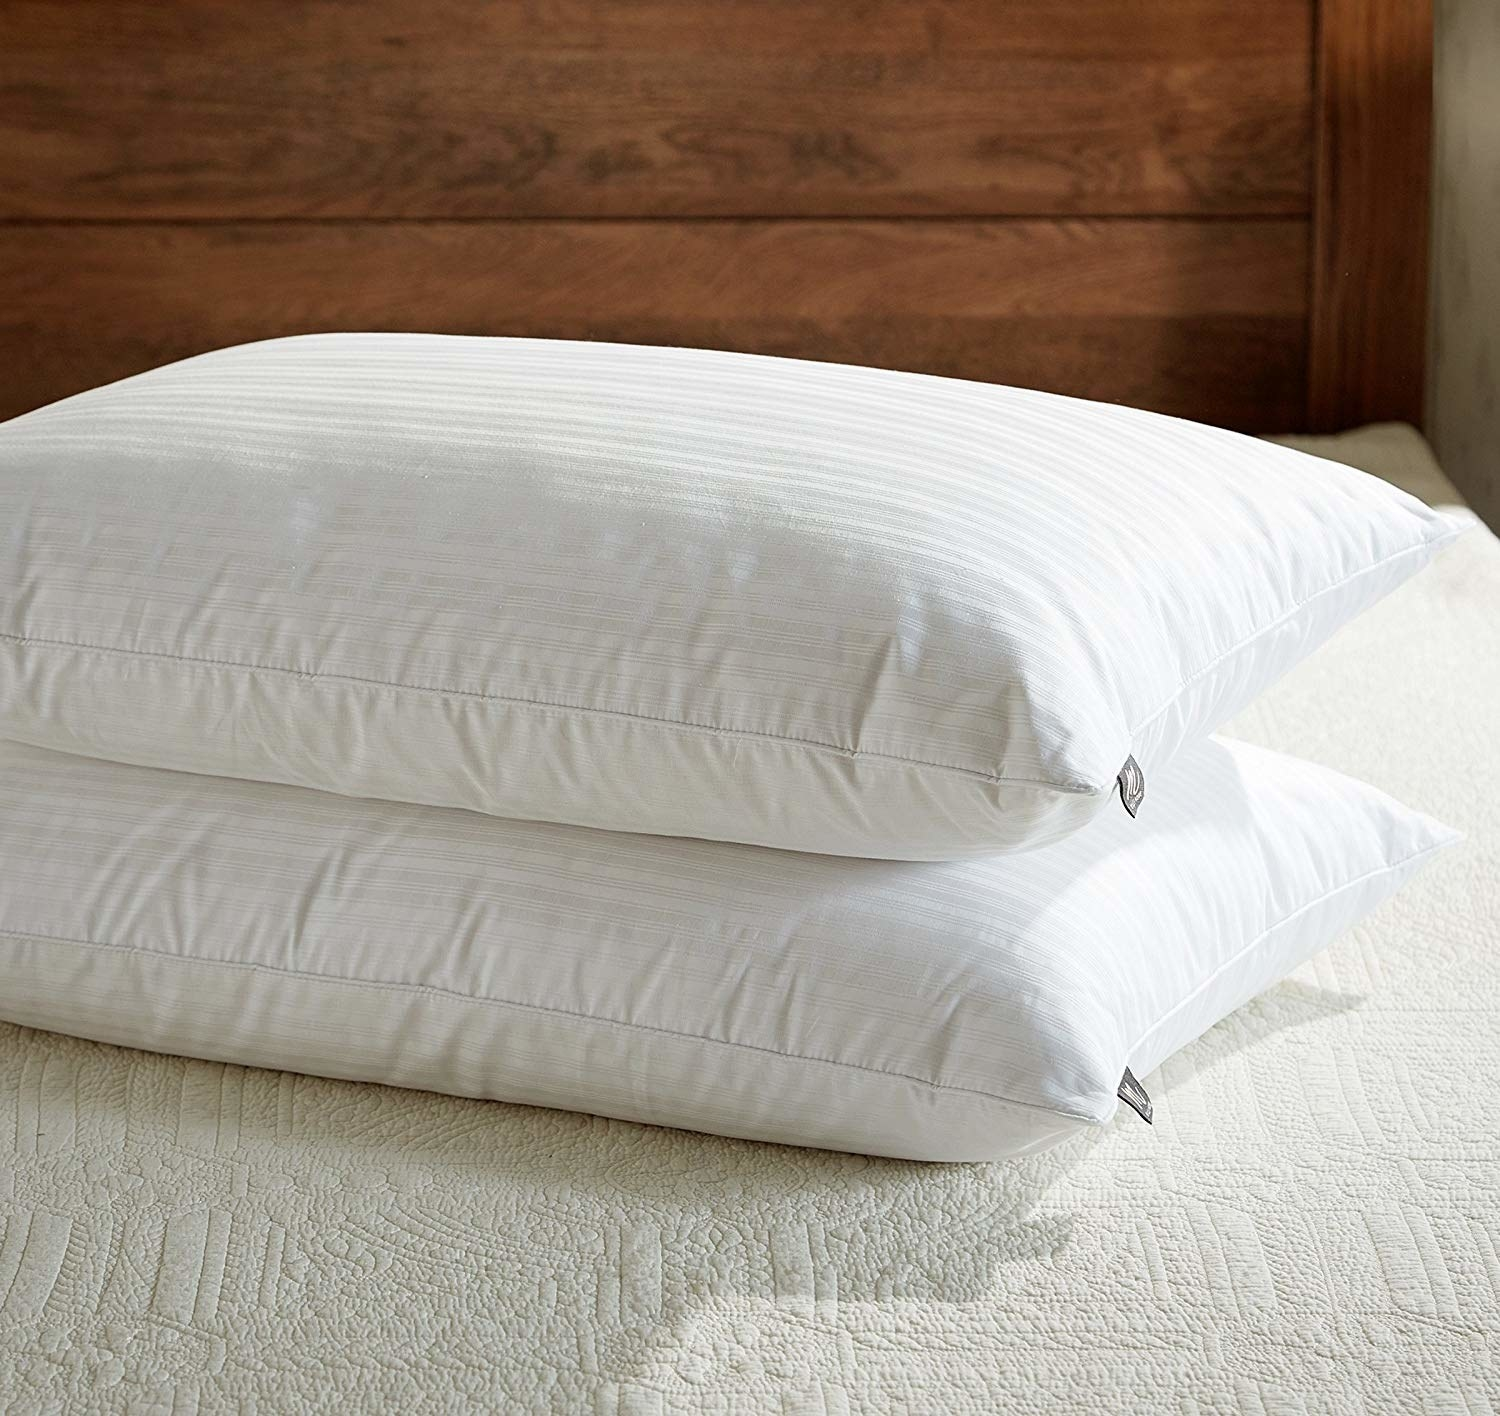 A product shot showing two of the pillows, one stacked on the other. The material is a standard white with light stripes.